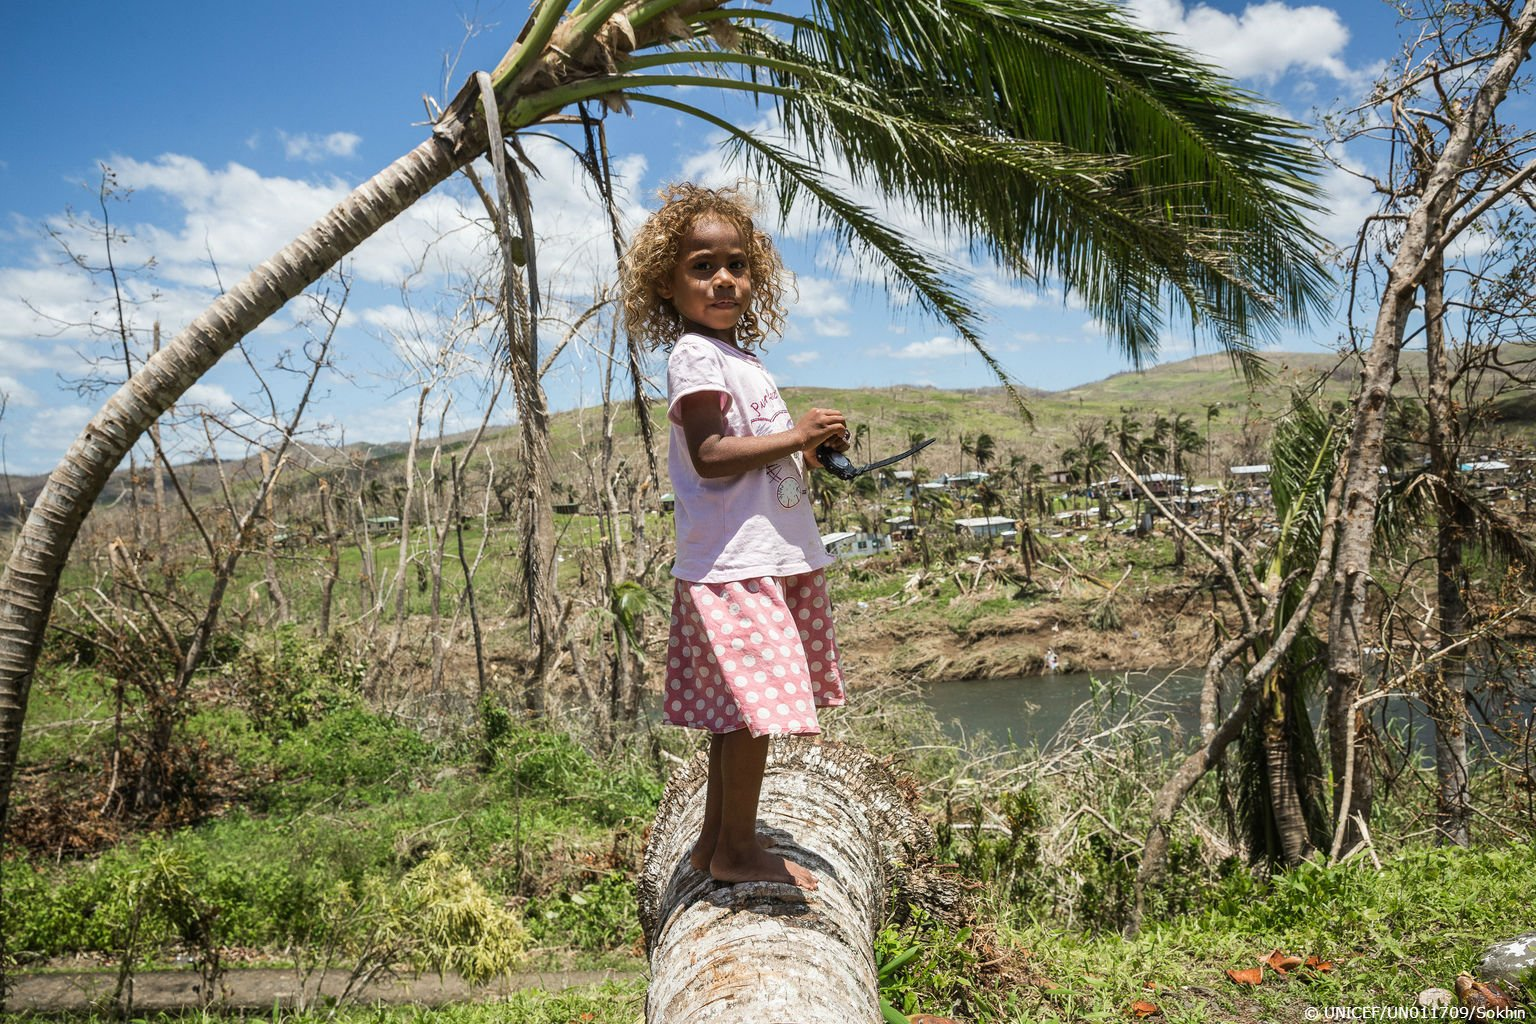 Livini, 4, from Navitilevu village, #Fiji stands on a fallen coconut tree that was uprooted by #CycloneWinston https://t.co/fePQxBcOta